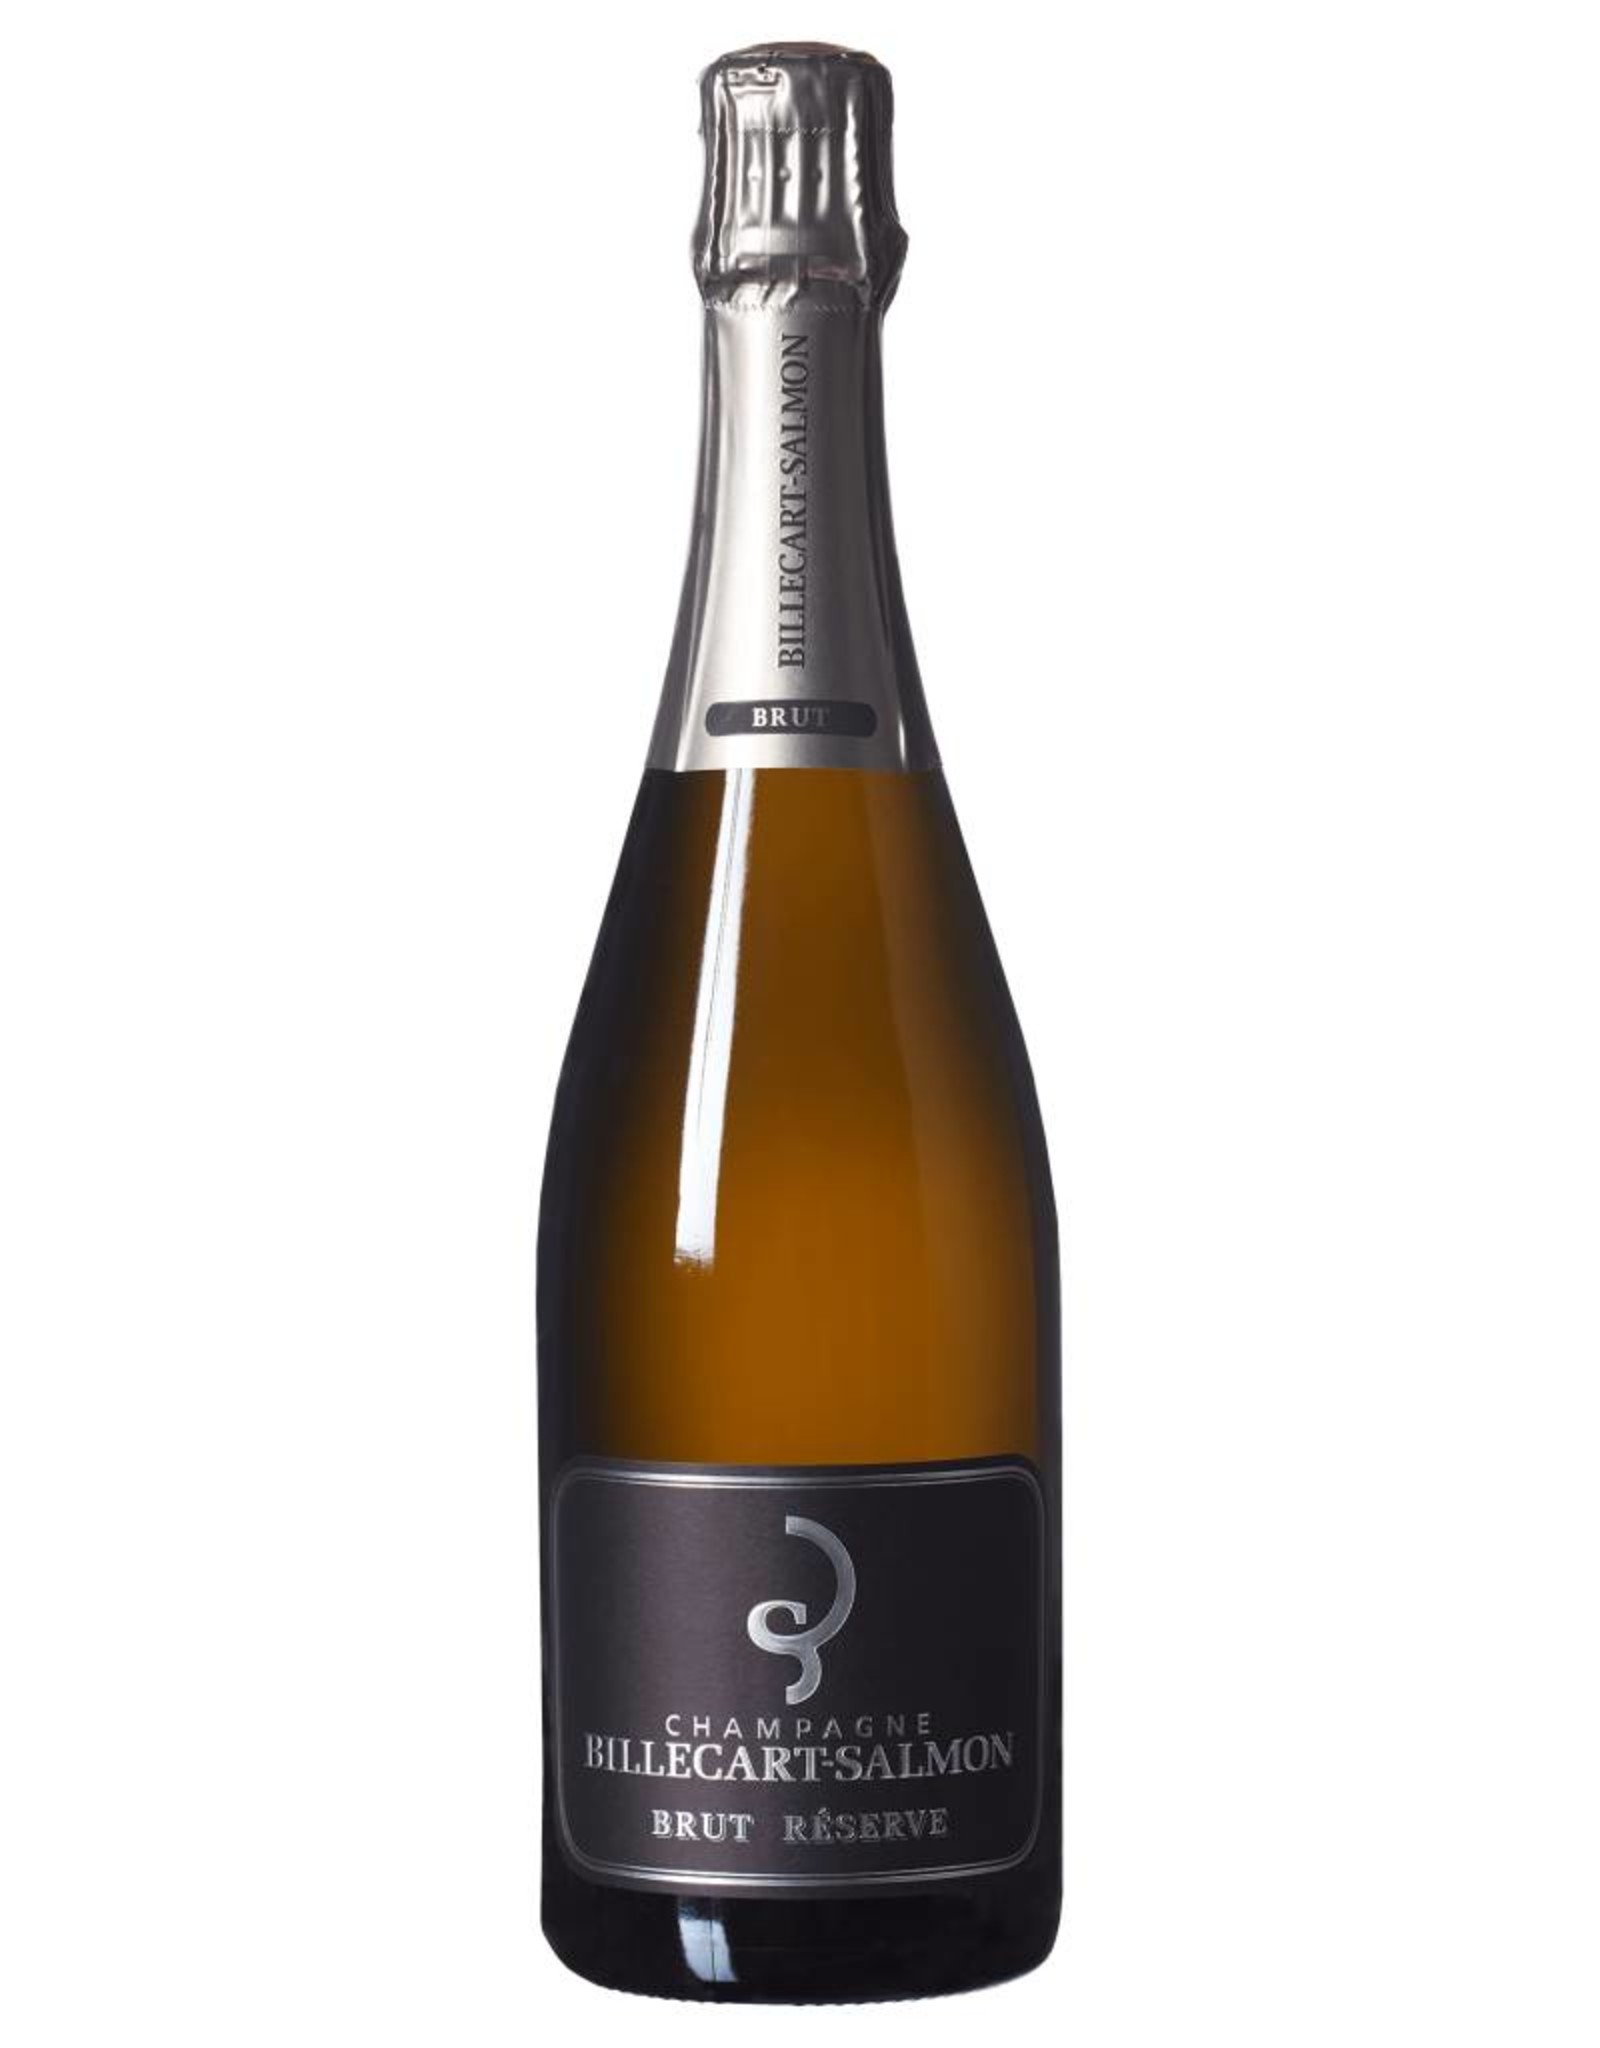 Billecart-Salmon Brut Réserve, Champagne Billecart-Salmon